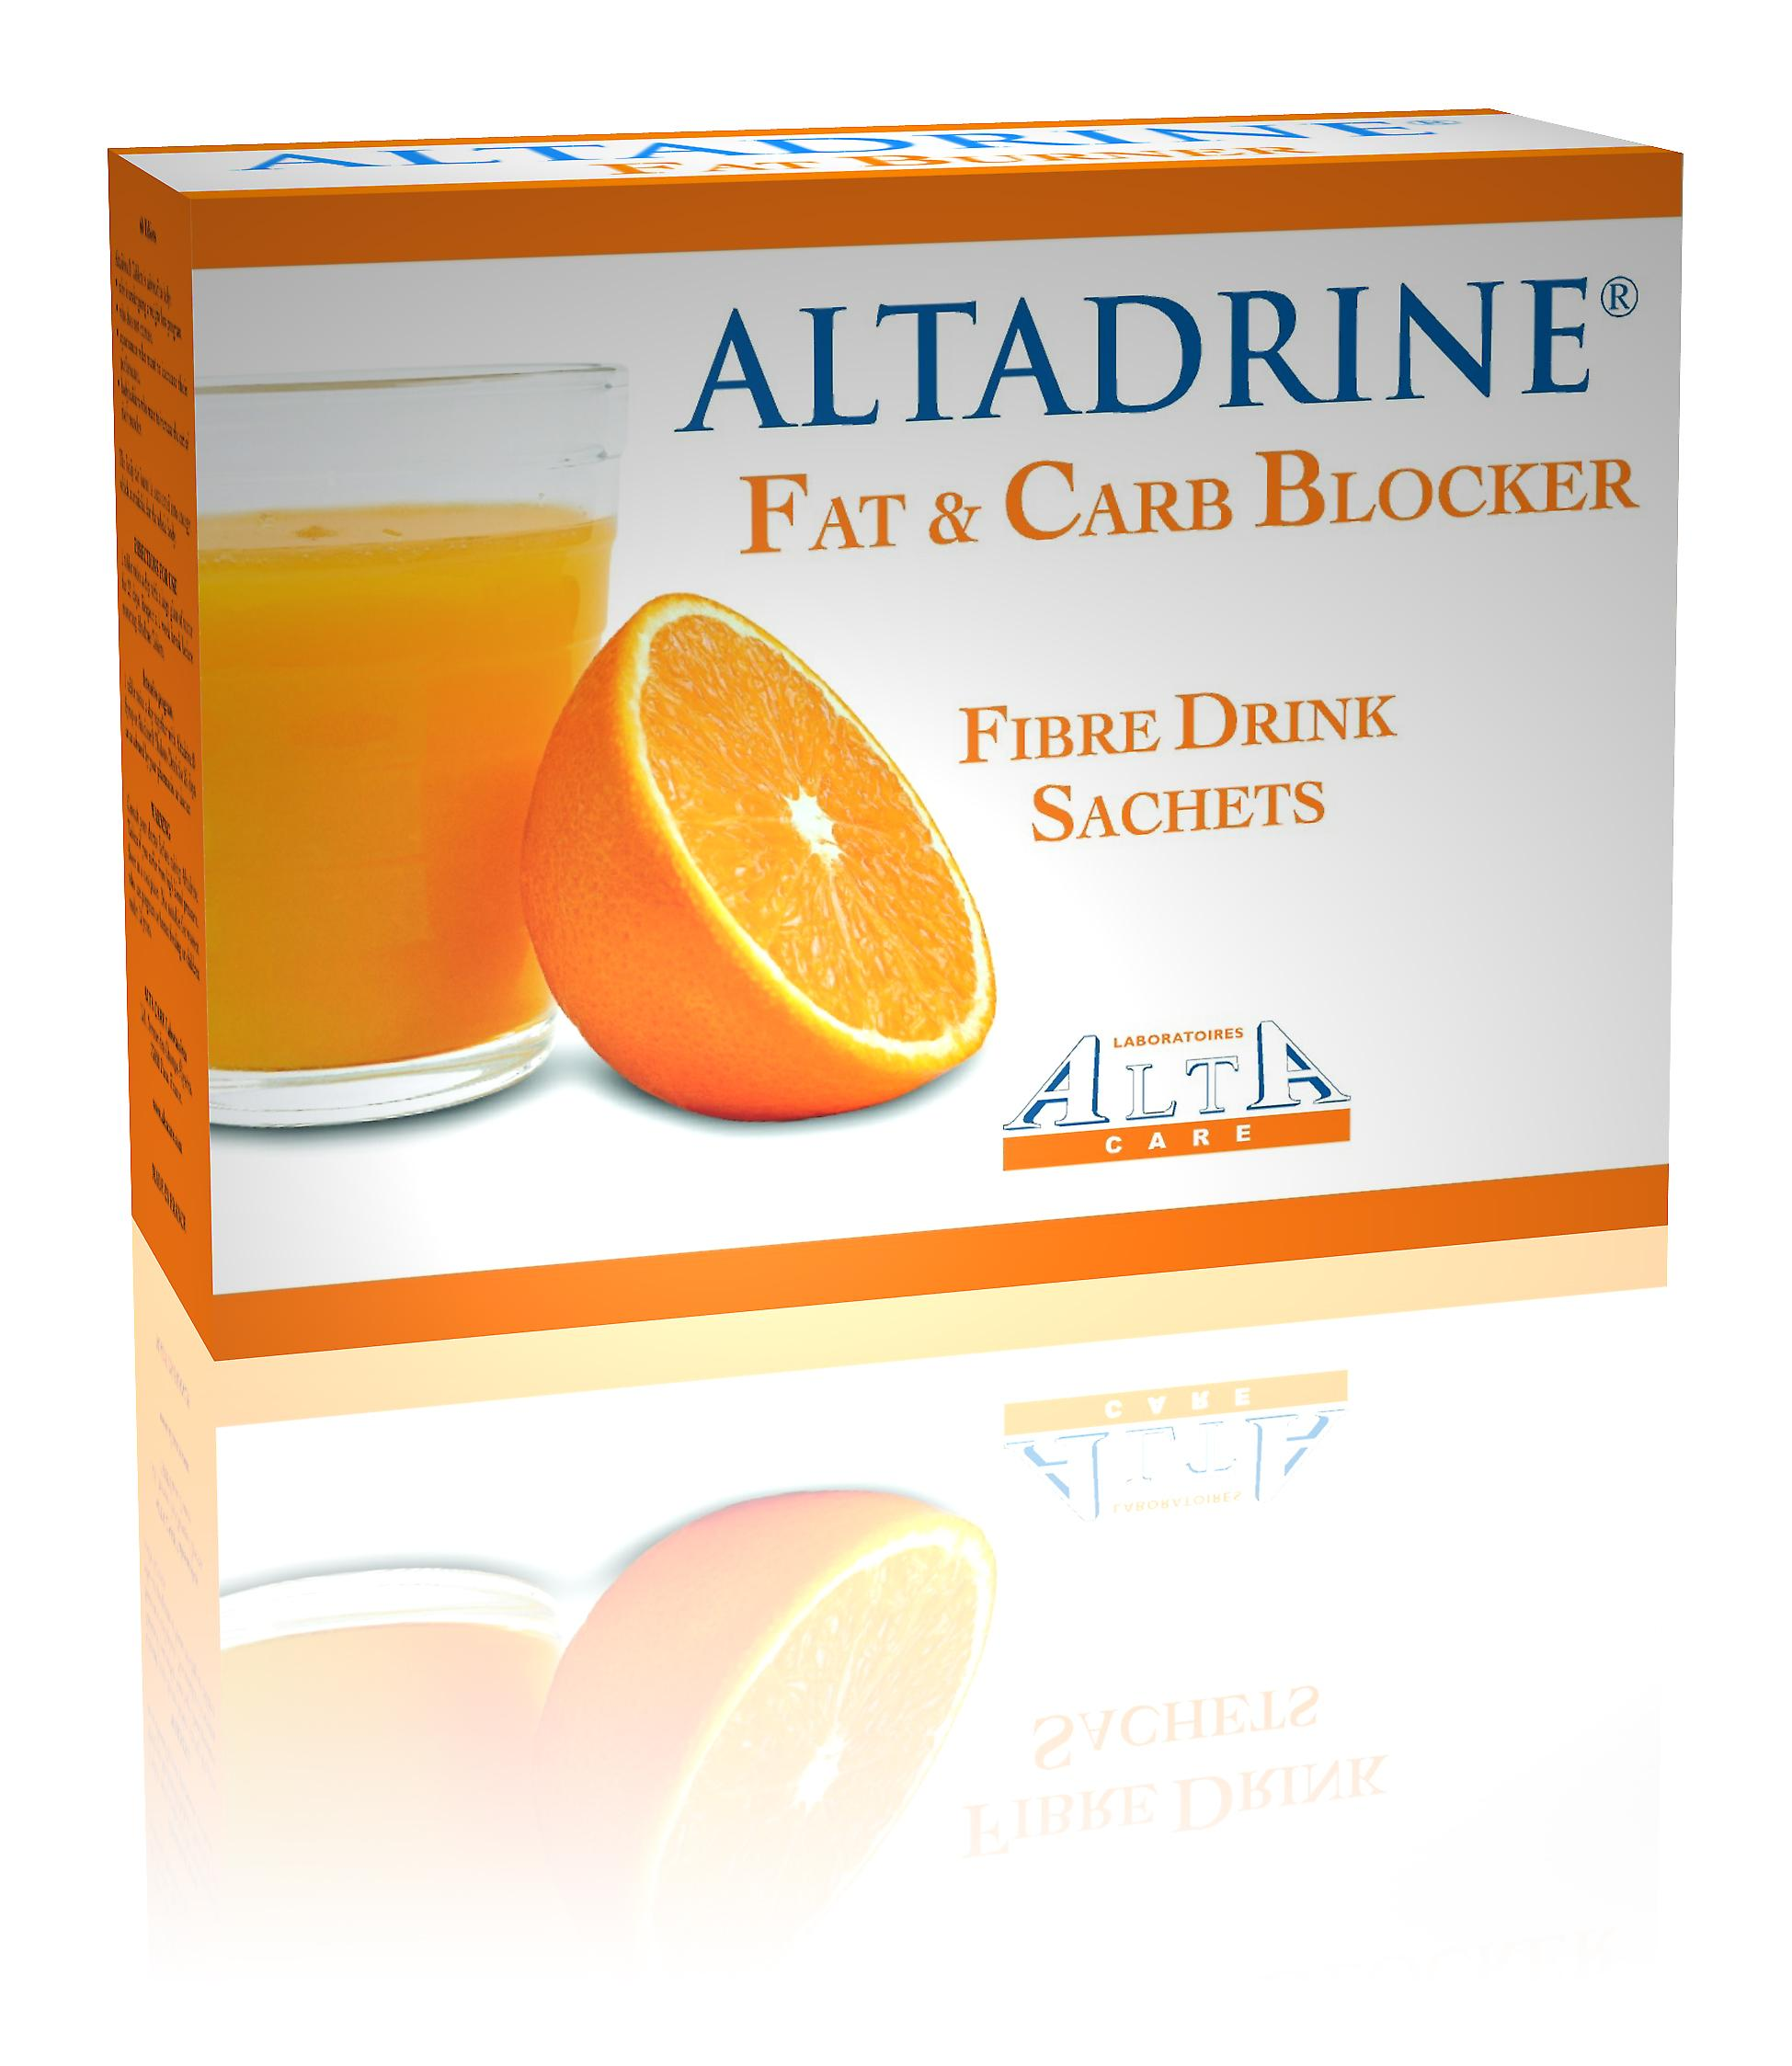 Altadrine Fat and Carb Blocker